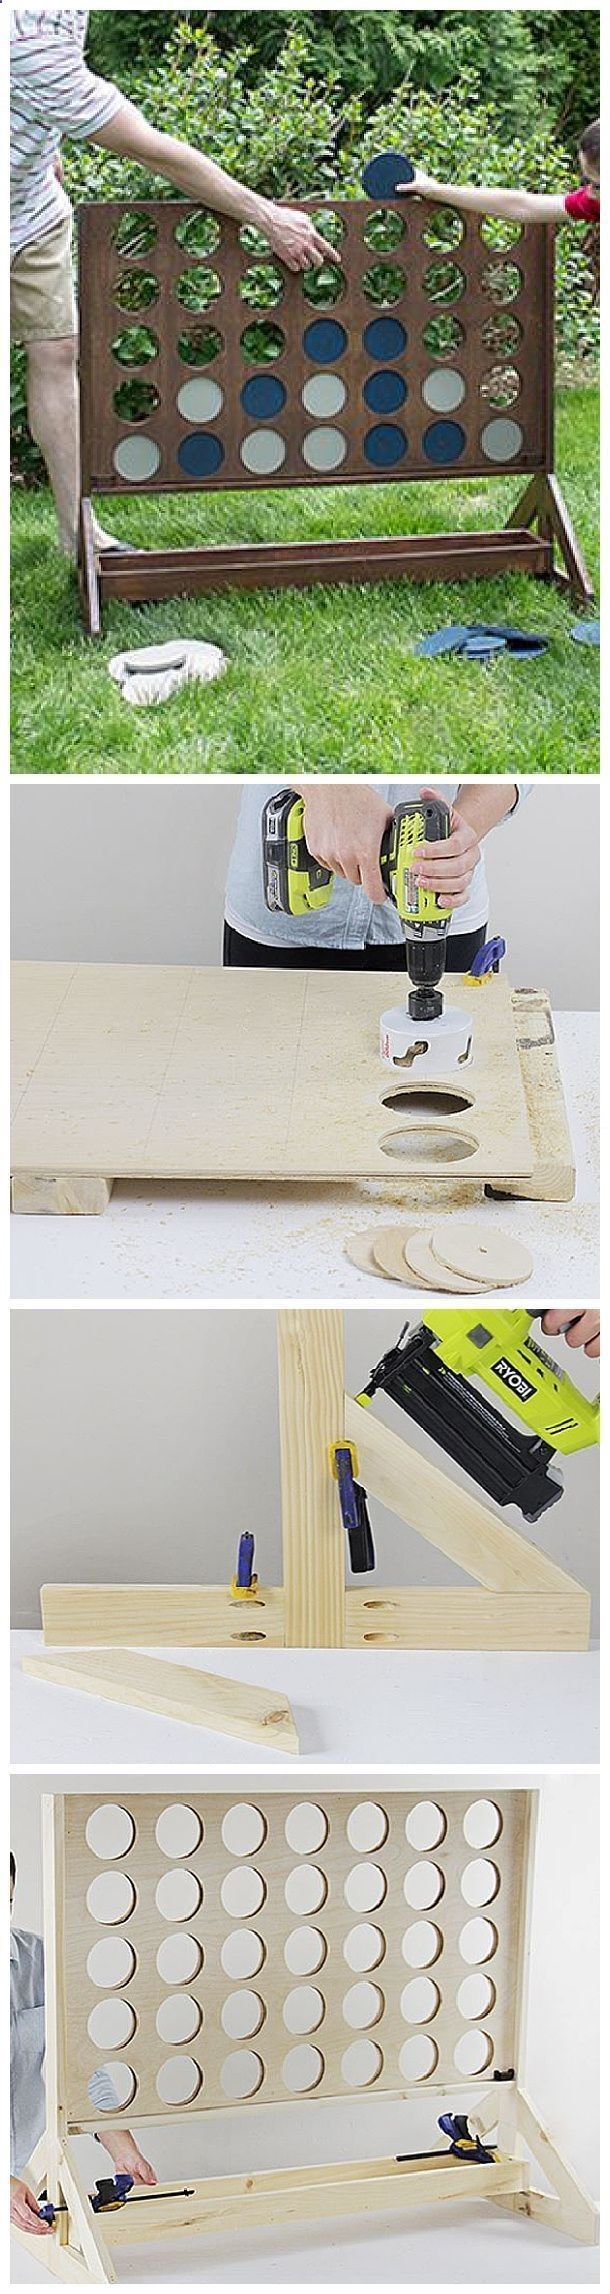 Plans of woodworking diy projects diy projects outdoor games plans of woodworking diy projects diy projects outdoor games do it yourself connect four or four in a row game easy woodworking project s solutioingenieria Gallery